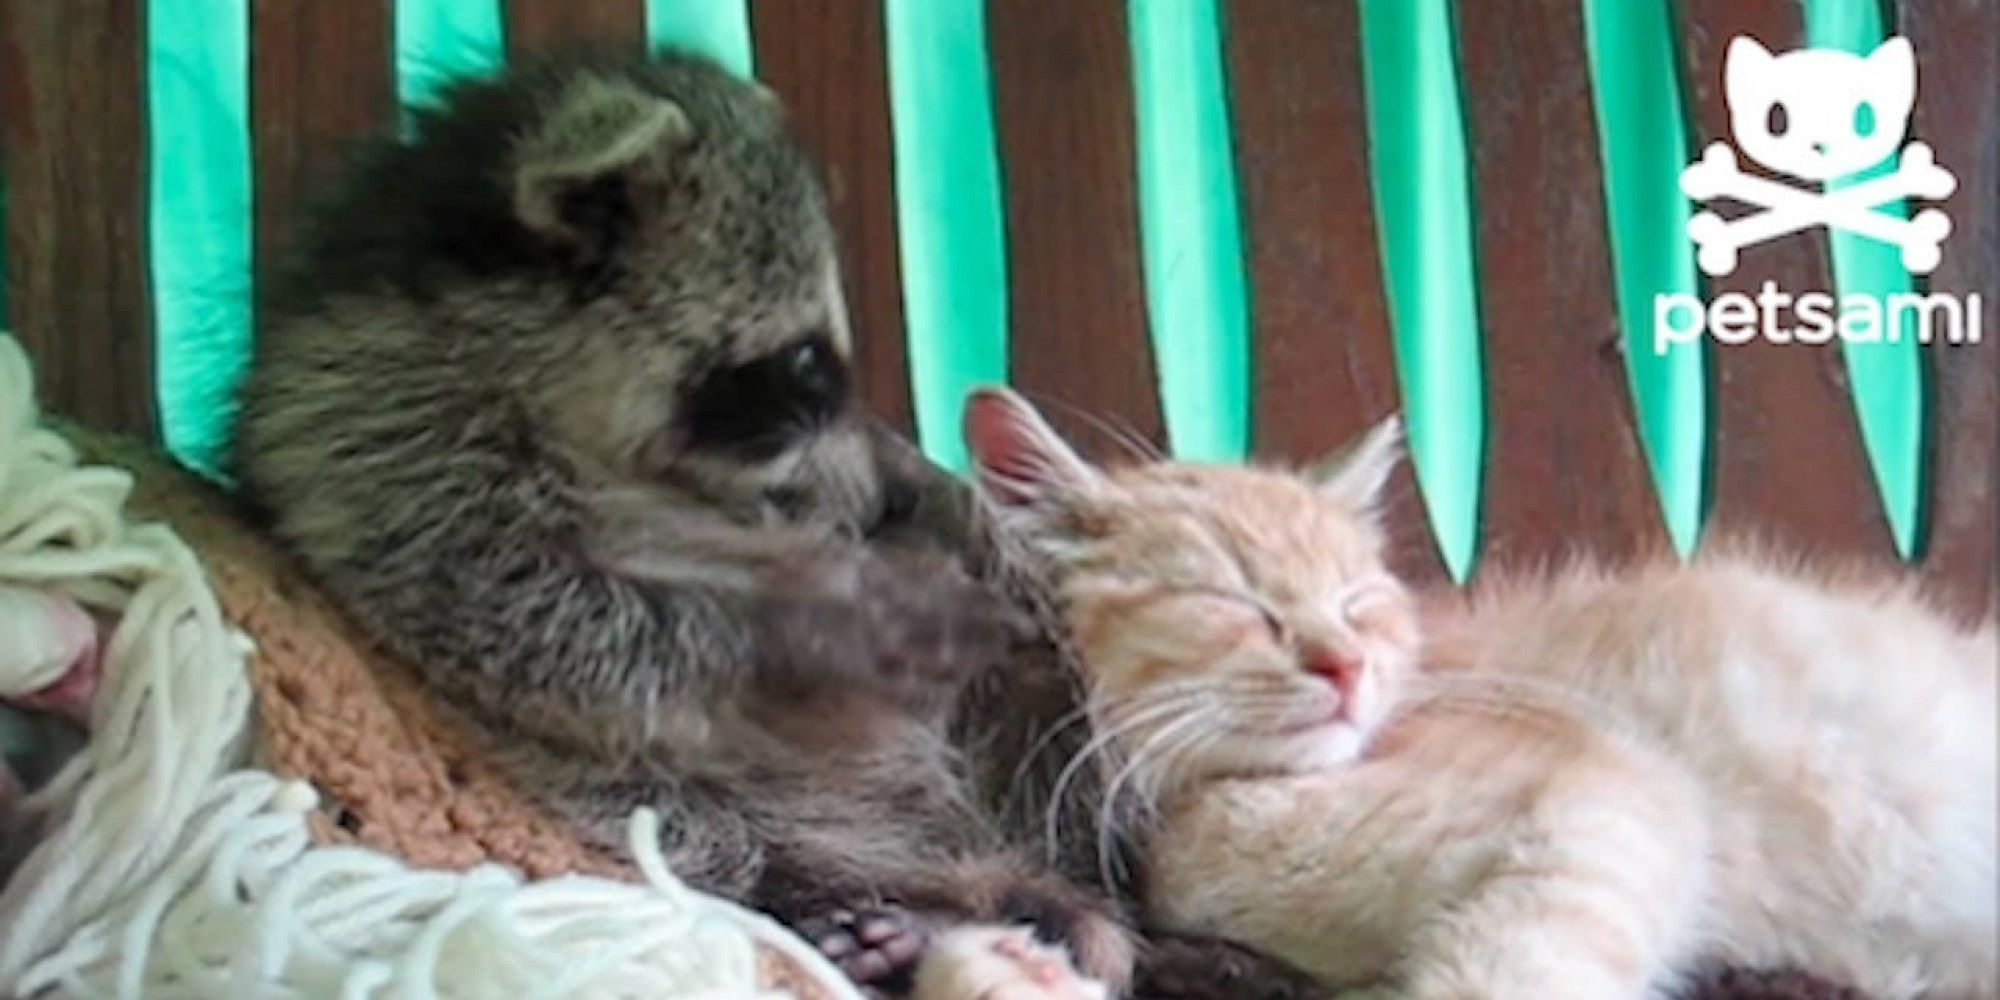 animals raccoons weasels friends - photo #39